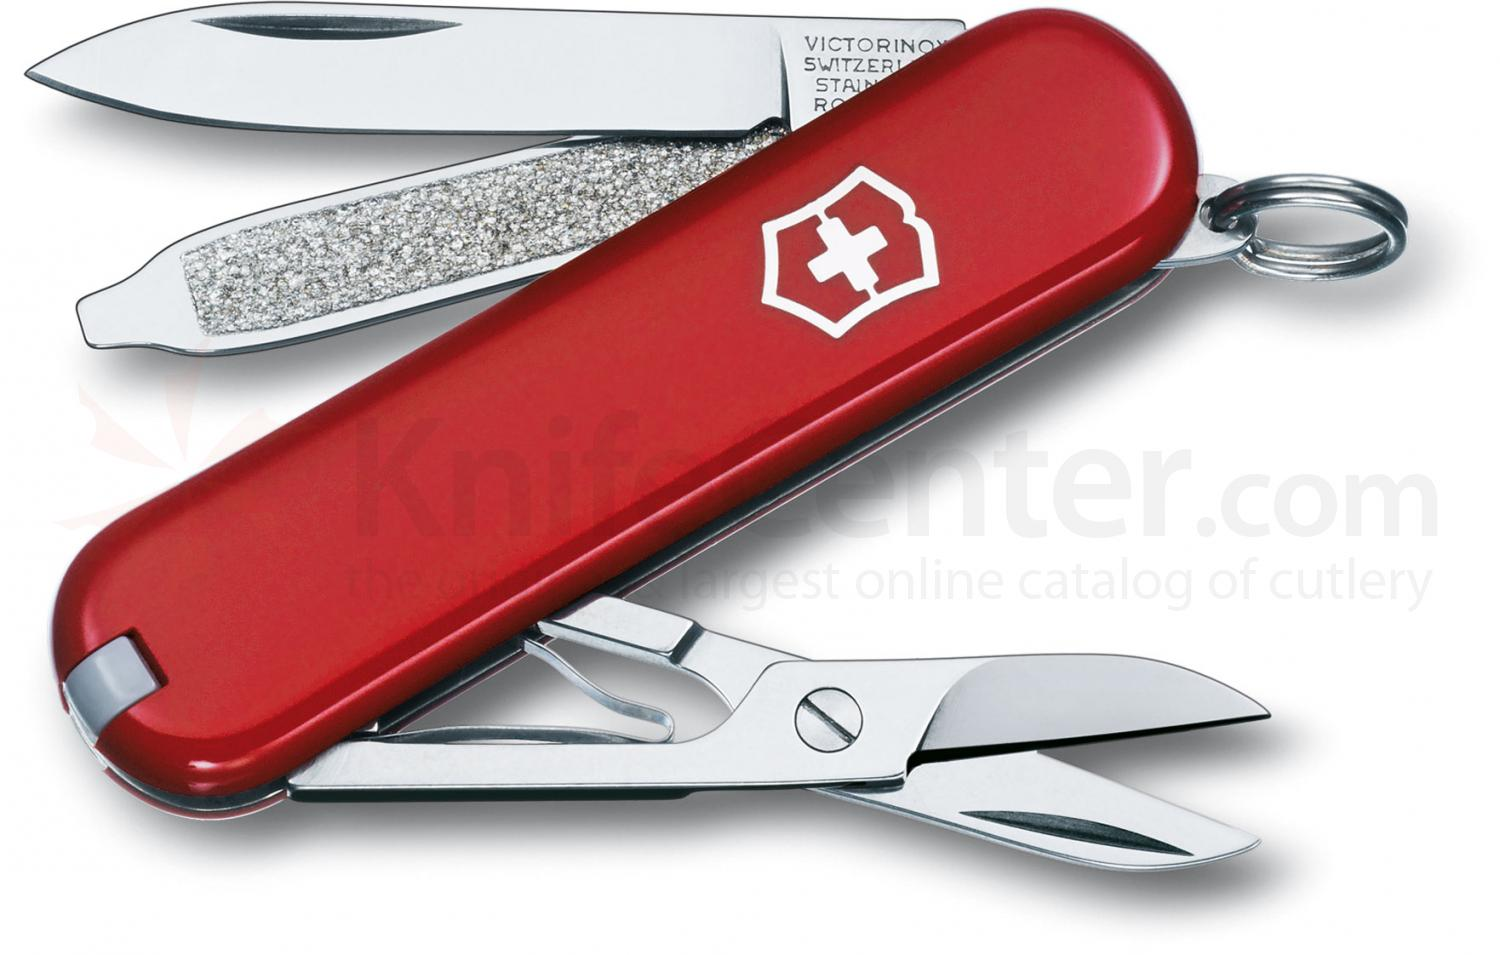 Victorinox Swiss Army Classic SD Multi-Tool, Red, 2-1/4 inch Closed